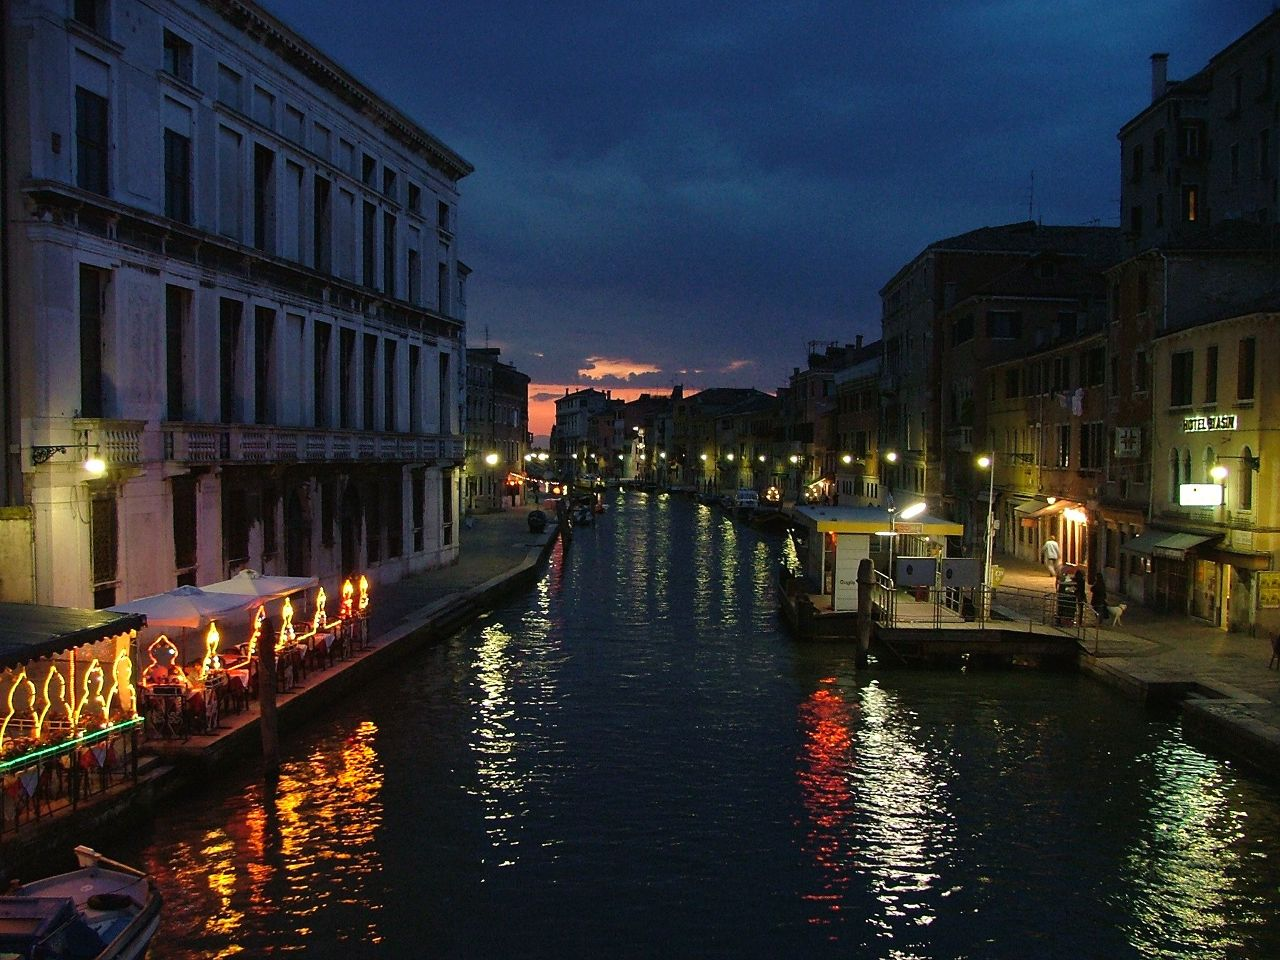 http://images.fanpop.com/images/image_uploads/Venice-italy-622275_1280_960.jpg